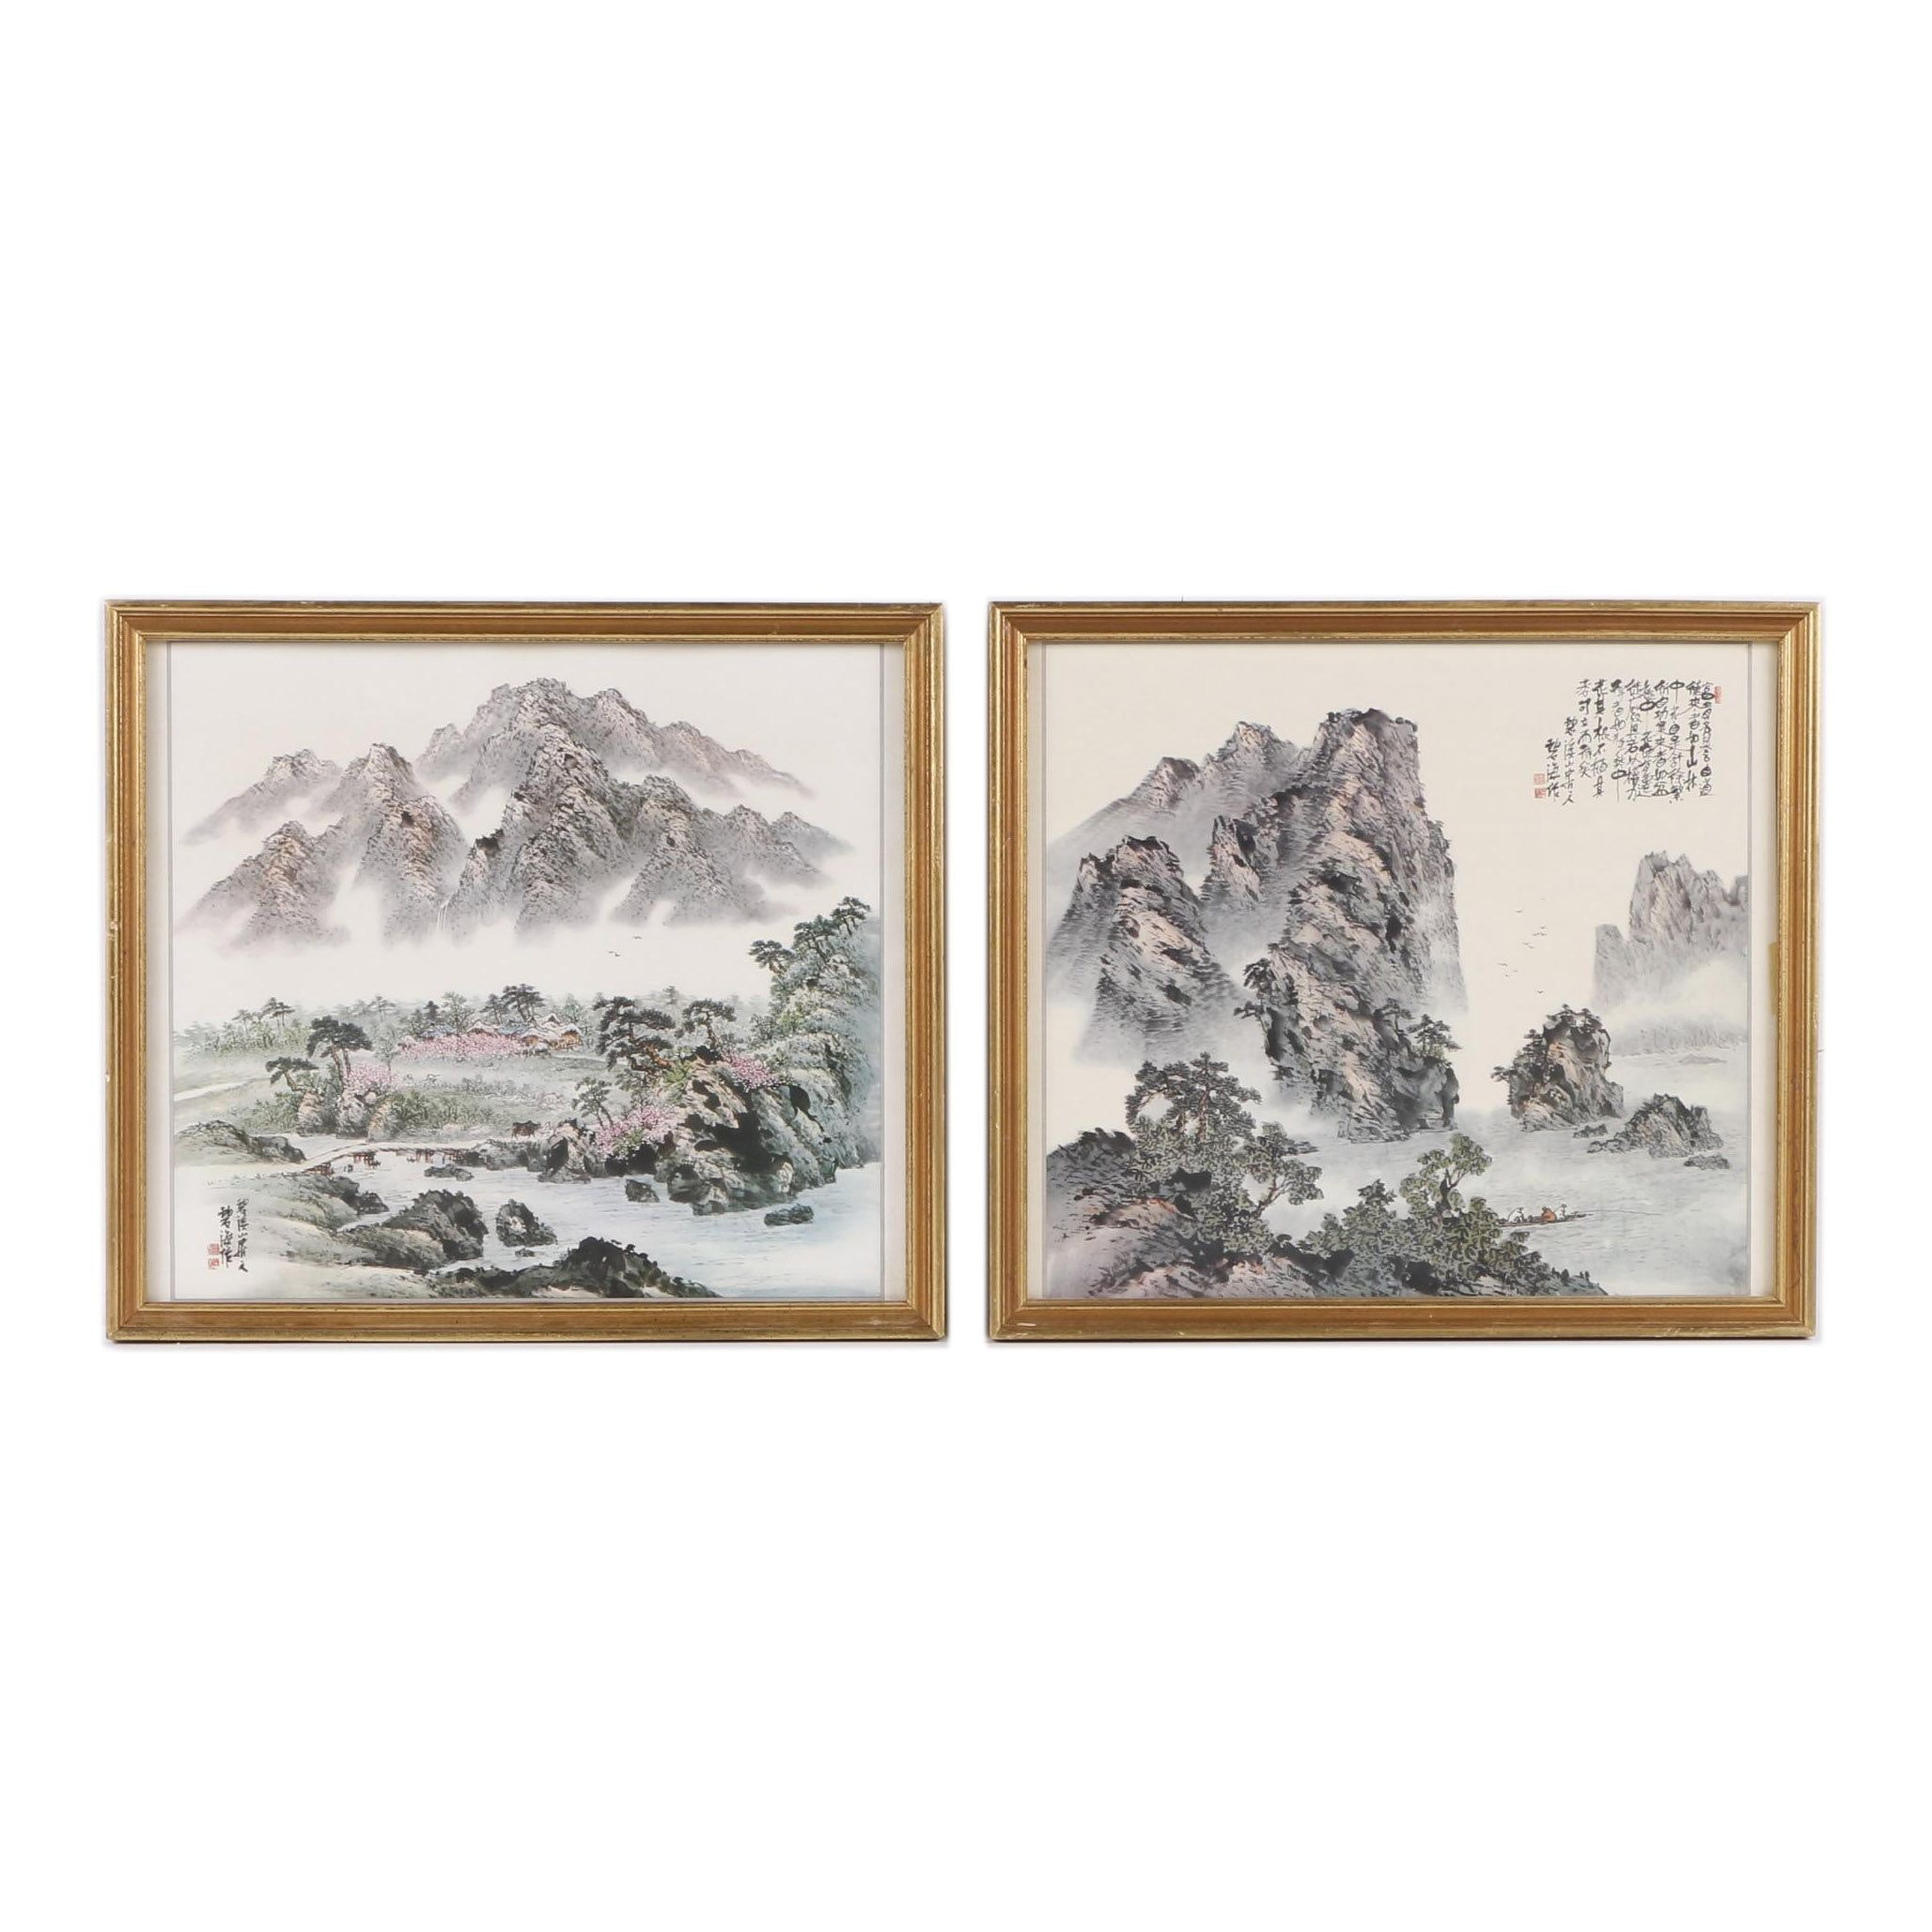 Offset Lithograph Prints After Chinese Landscape Paintings